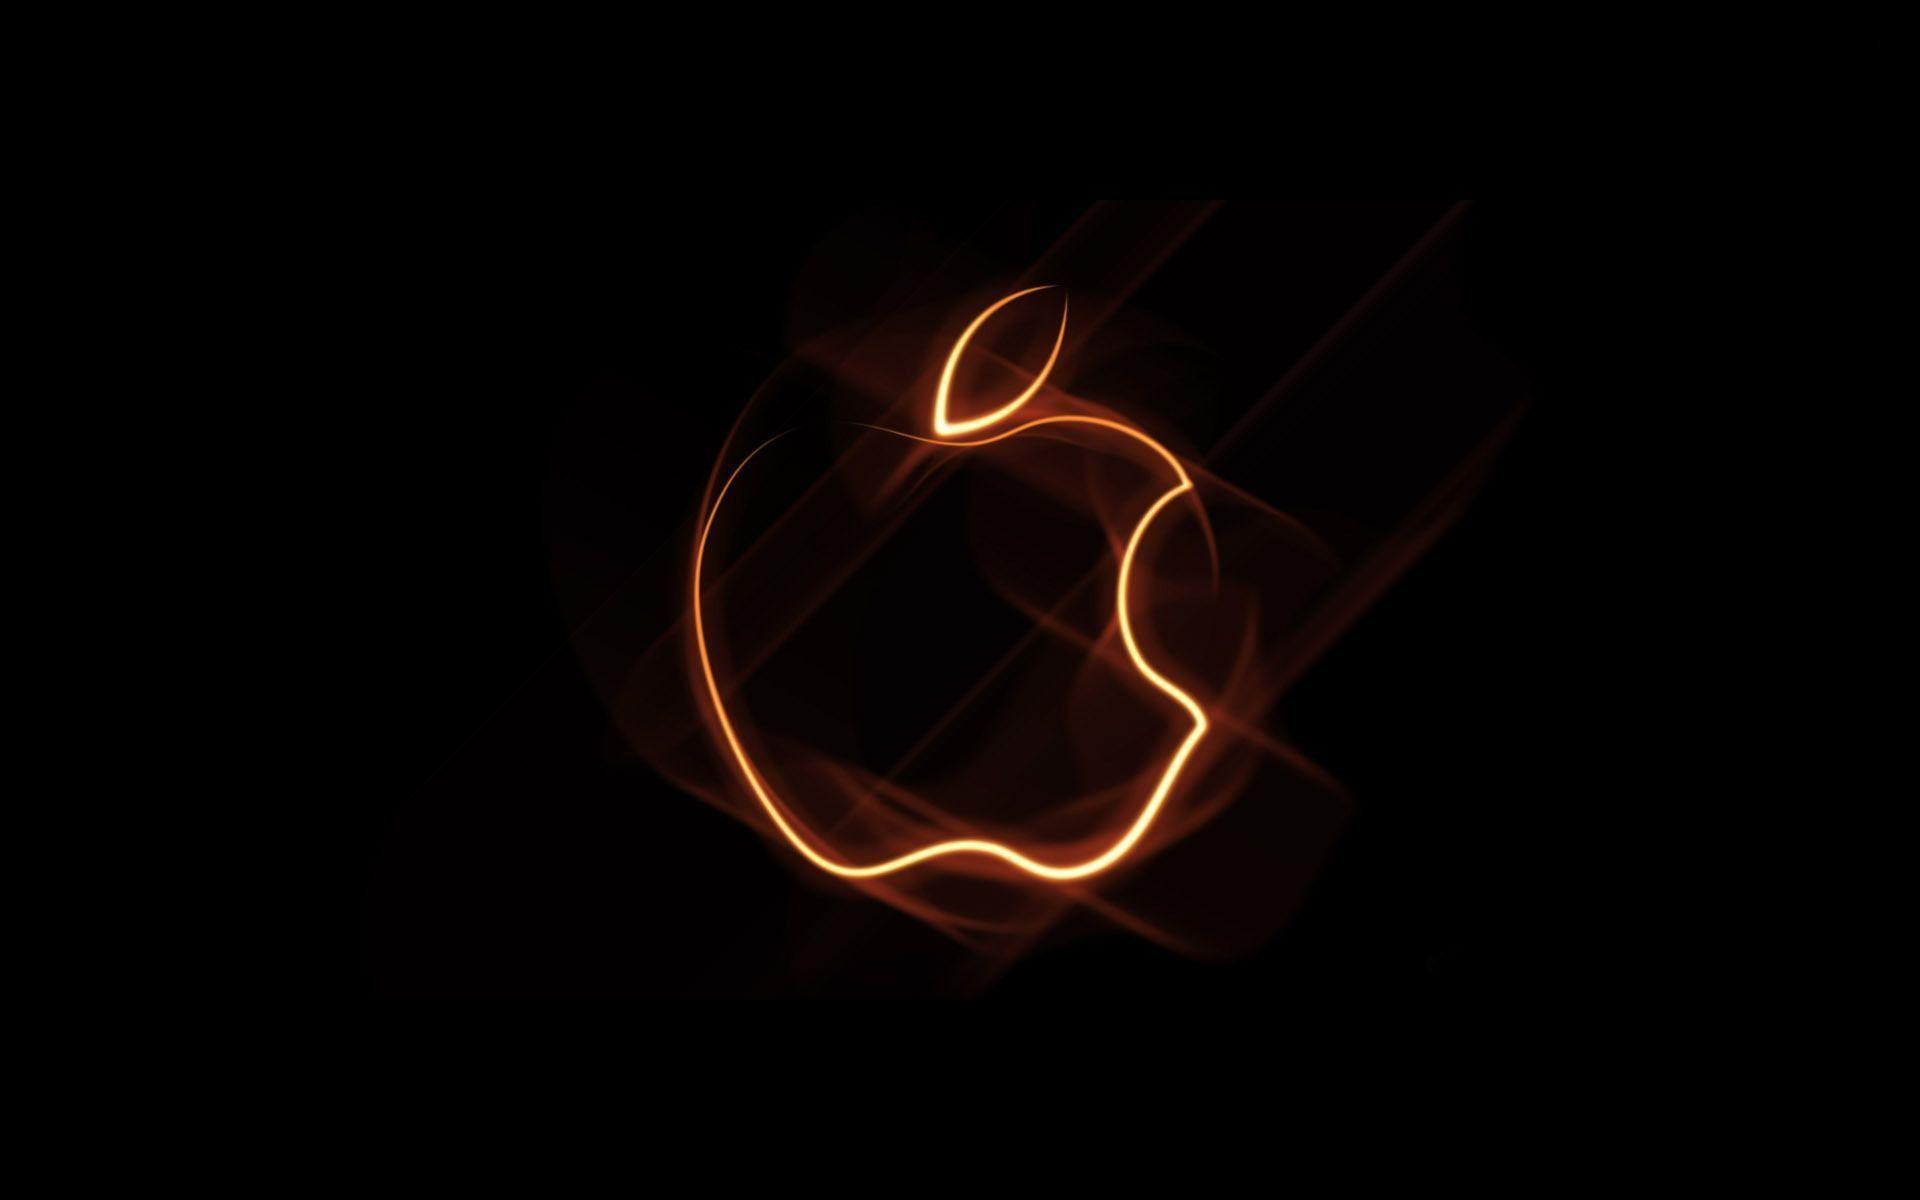 official apple logo. official apple logo wallpaper cool hd - hdwallshare.com